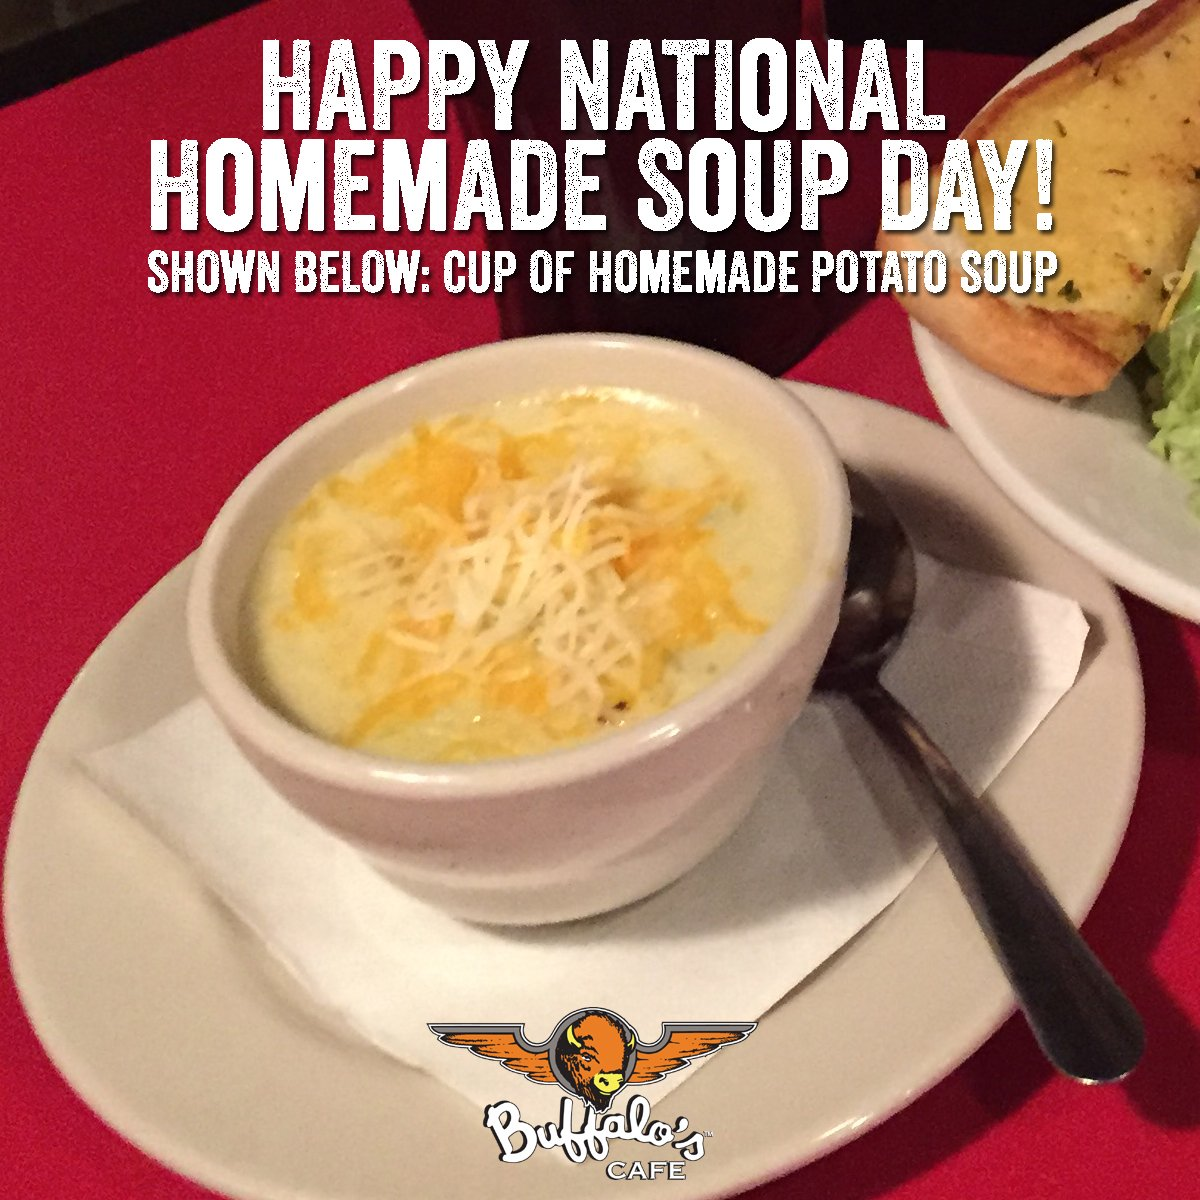 Nationalhomemadesoupday Hashtag On Twitter